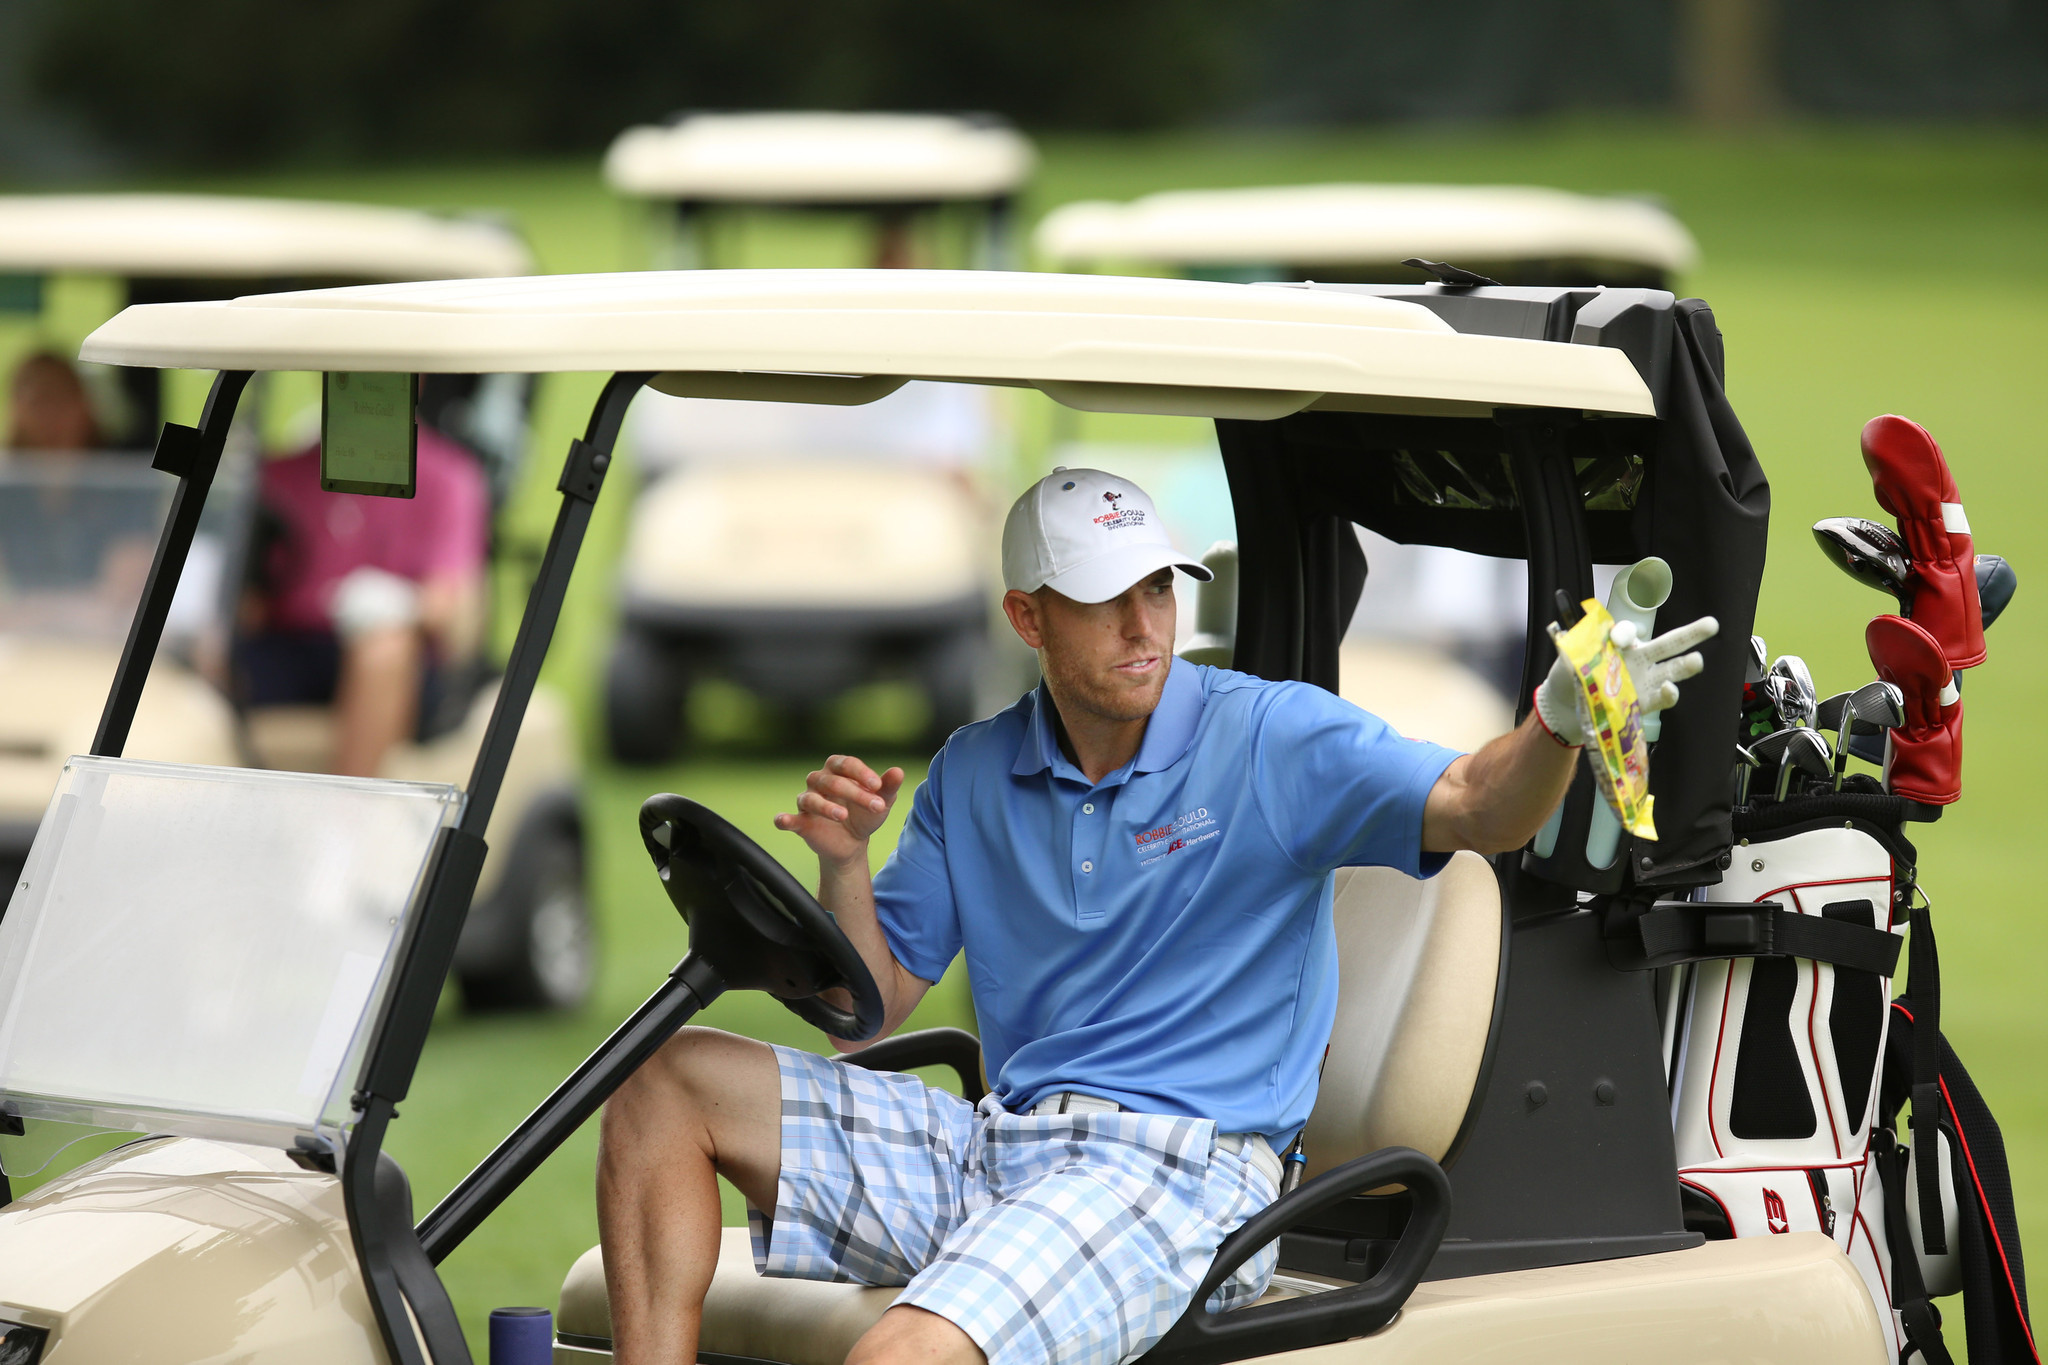 Ct-robbie-gould-charity-golf-chicago-inc-20170612